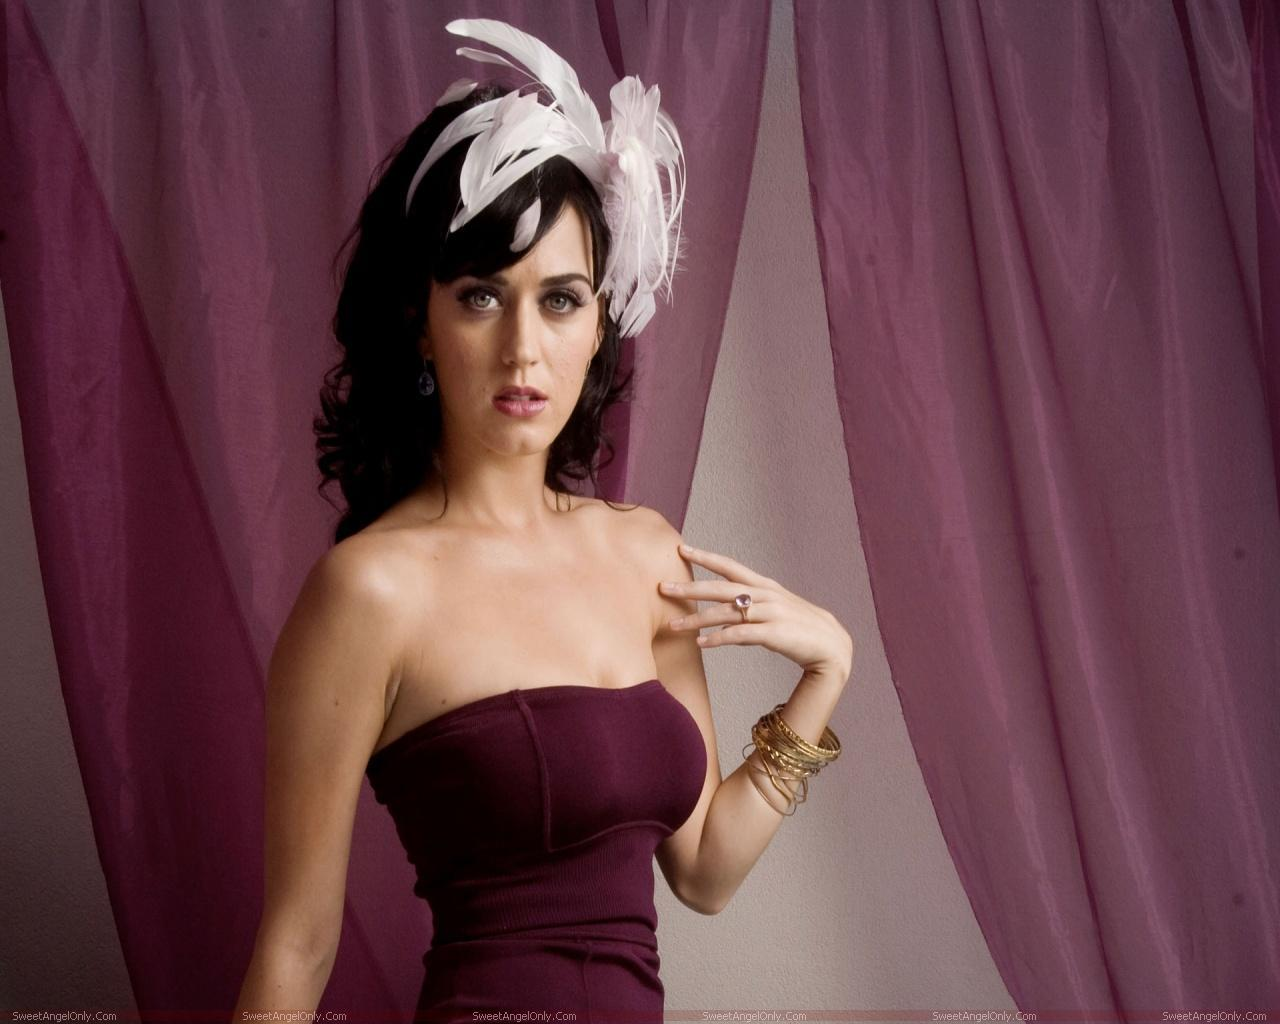 http://3.bp.blogspot.com/-IPtOw4iGWvU/TXeLiIb5R0I/AAAAAAAAFJQ/fE03SO97y7I/s1600/singer_celebrity_katy_perry_hot_wallpaper_10.jpg